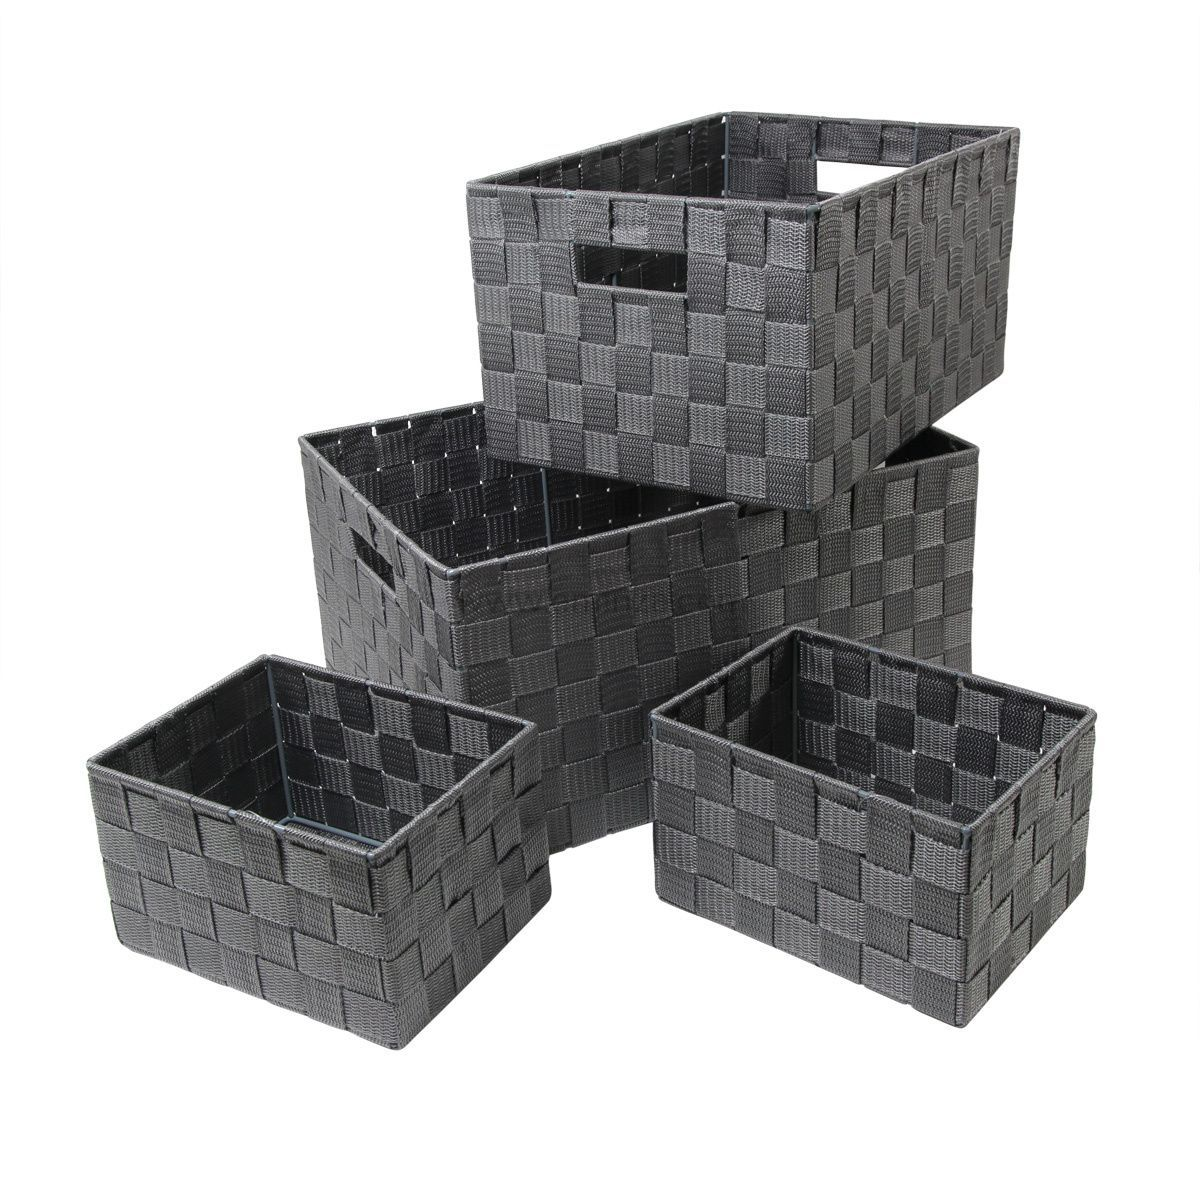 set de panier de rangement quatro gris panier d co eminza. Black Bedroom Furniture Sets. Home Design Ideas